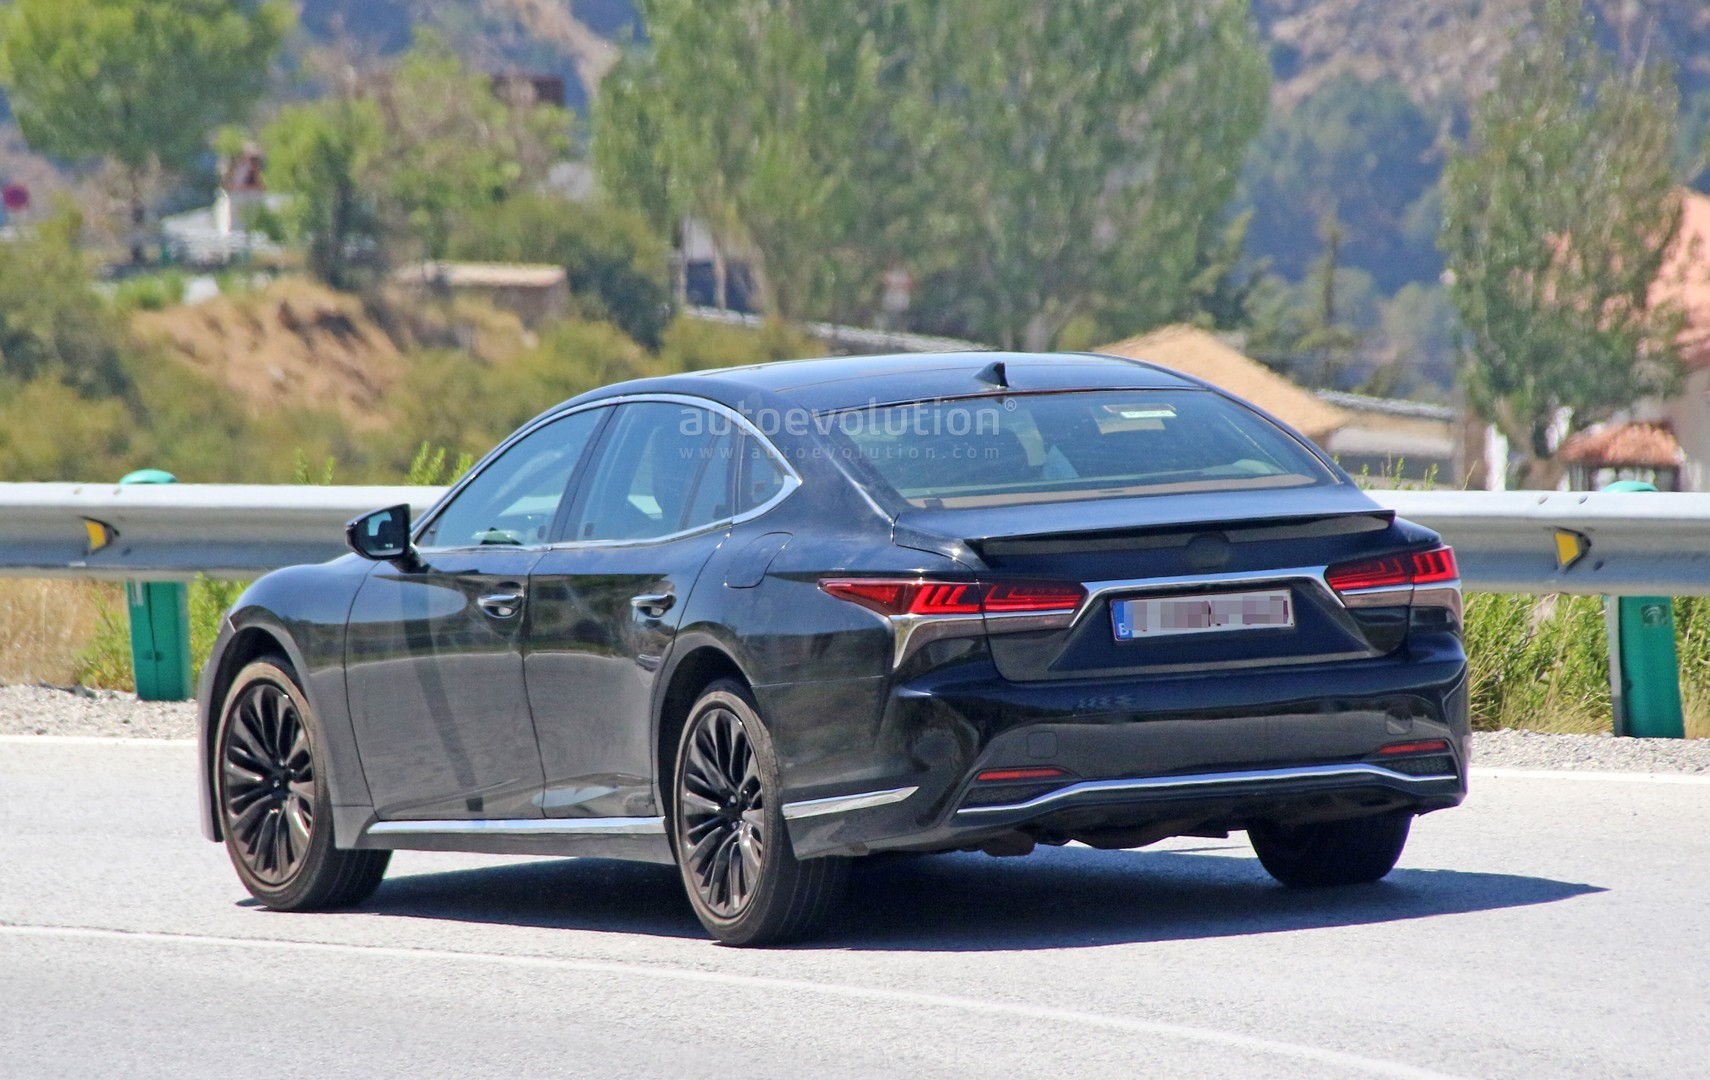 Spyshots 2019 Lexus LS F Spotted Could Pack Twin Turbo